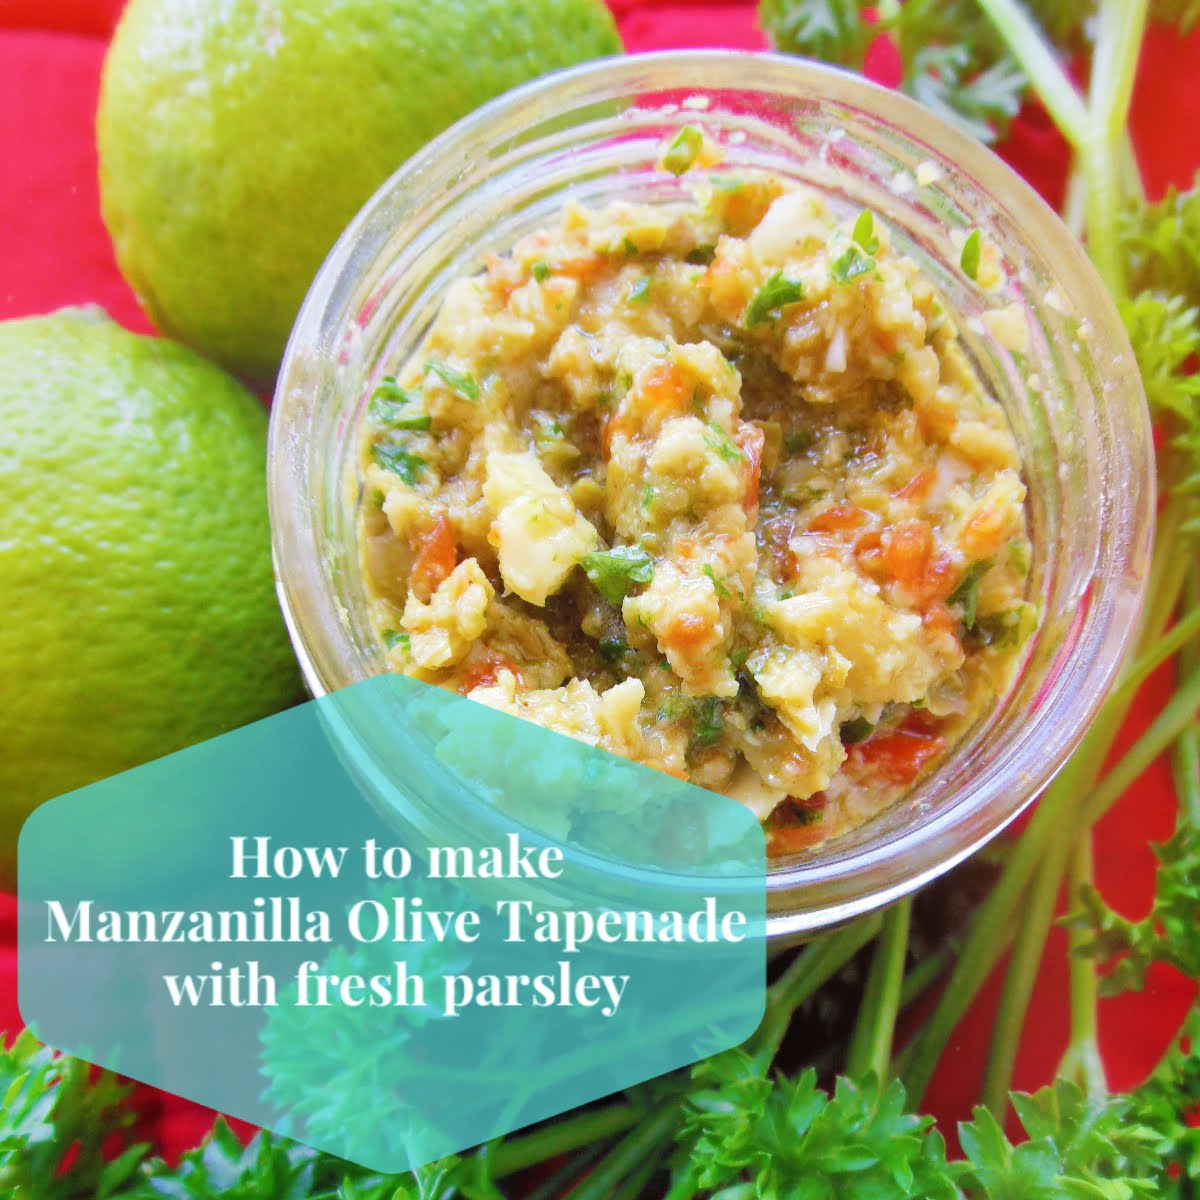 How to make Manzanilla Olive Tapenade with fresh parsley